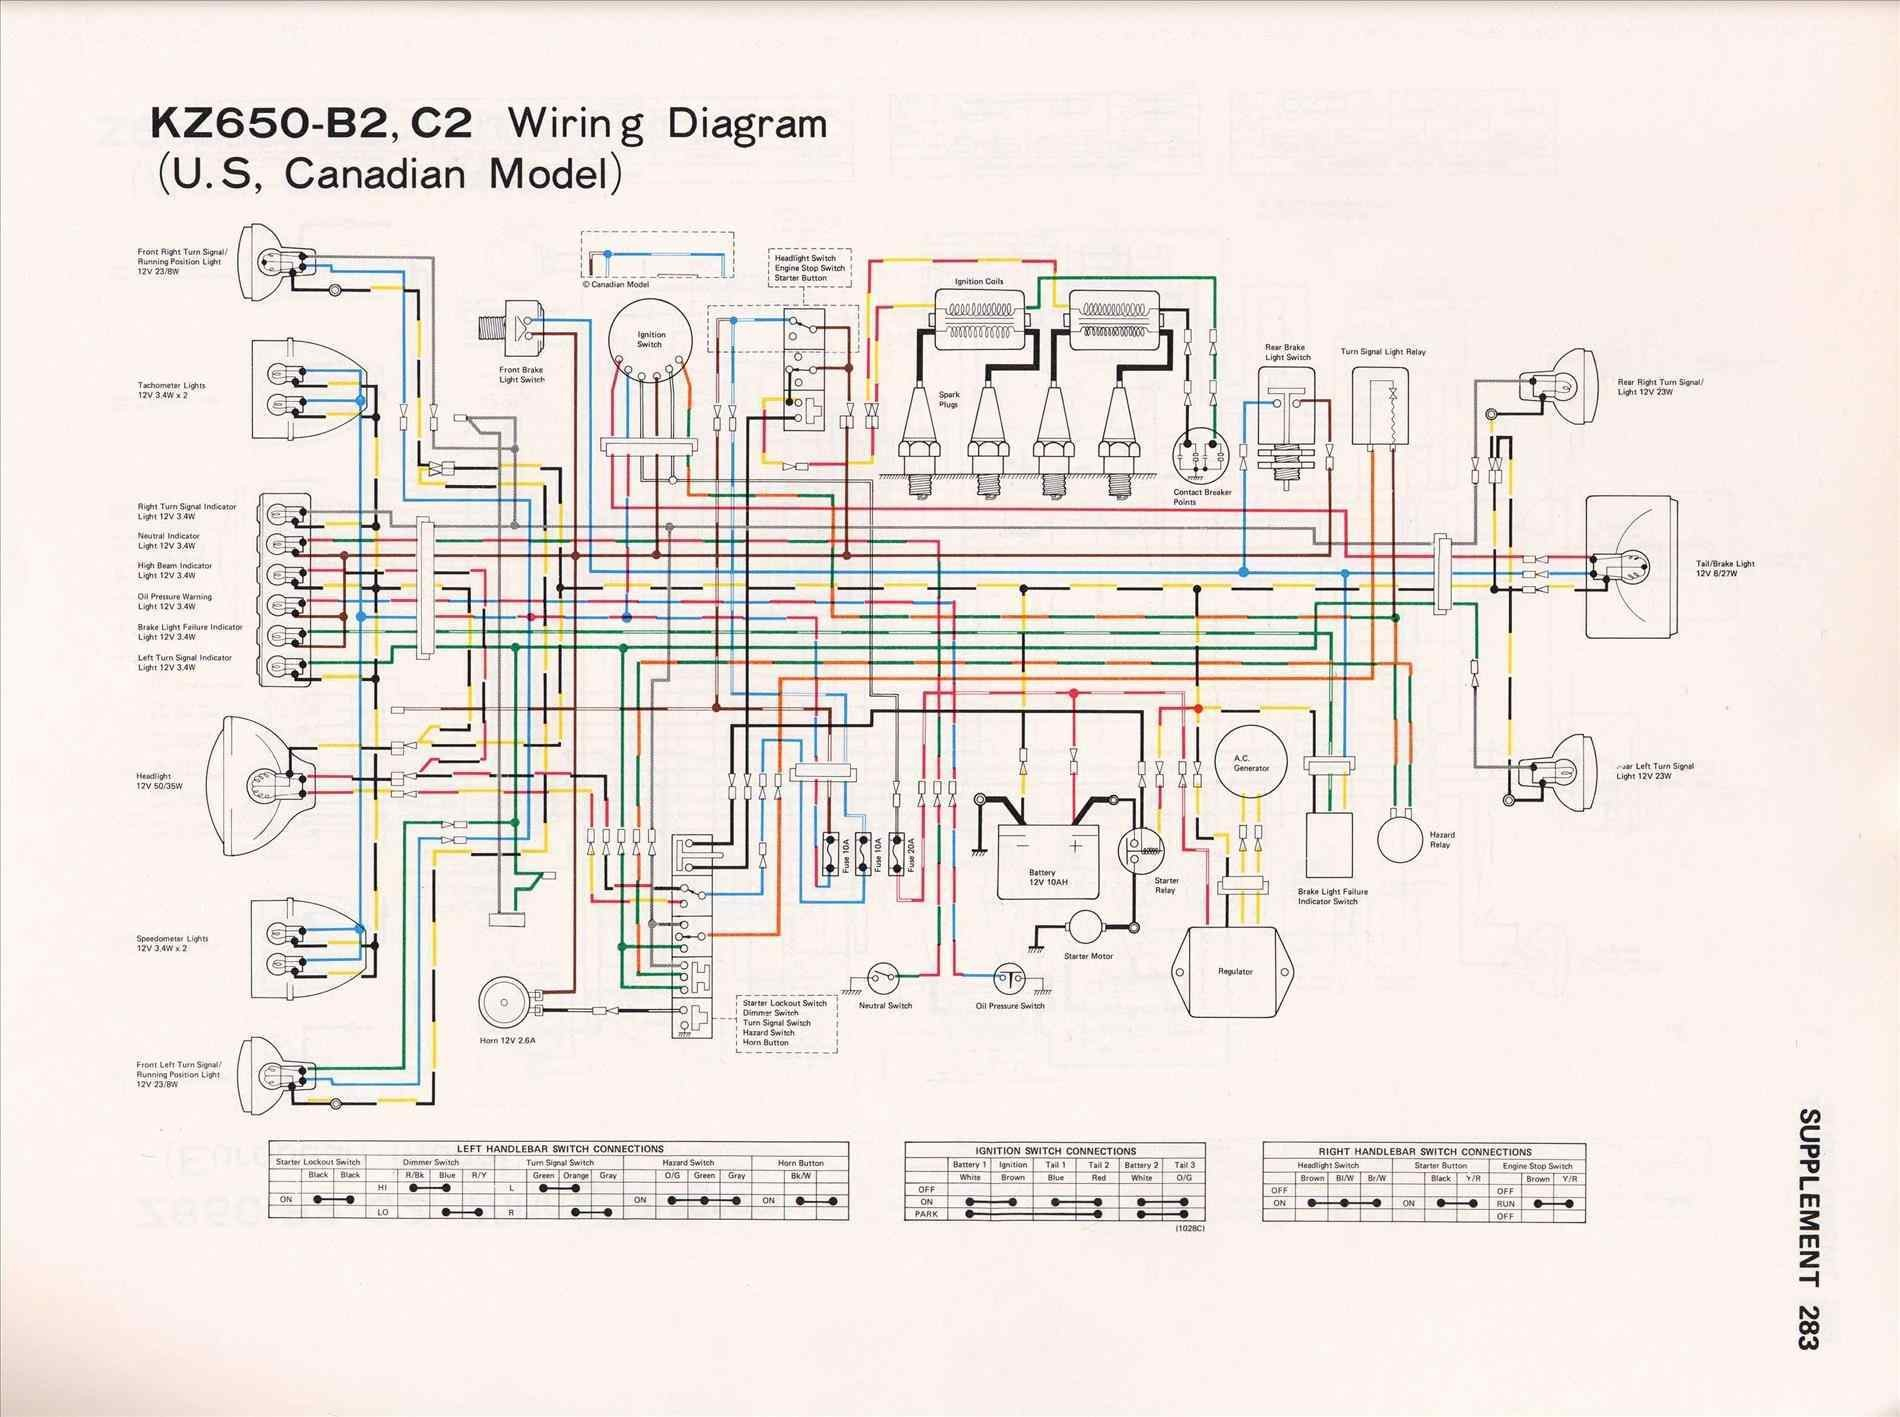 5Th Wheel Camper Wiring Diagram - Today Wiring Diagram - Fifth Wheel Trailer Wiring Diagram